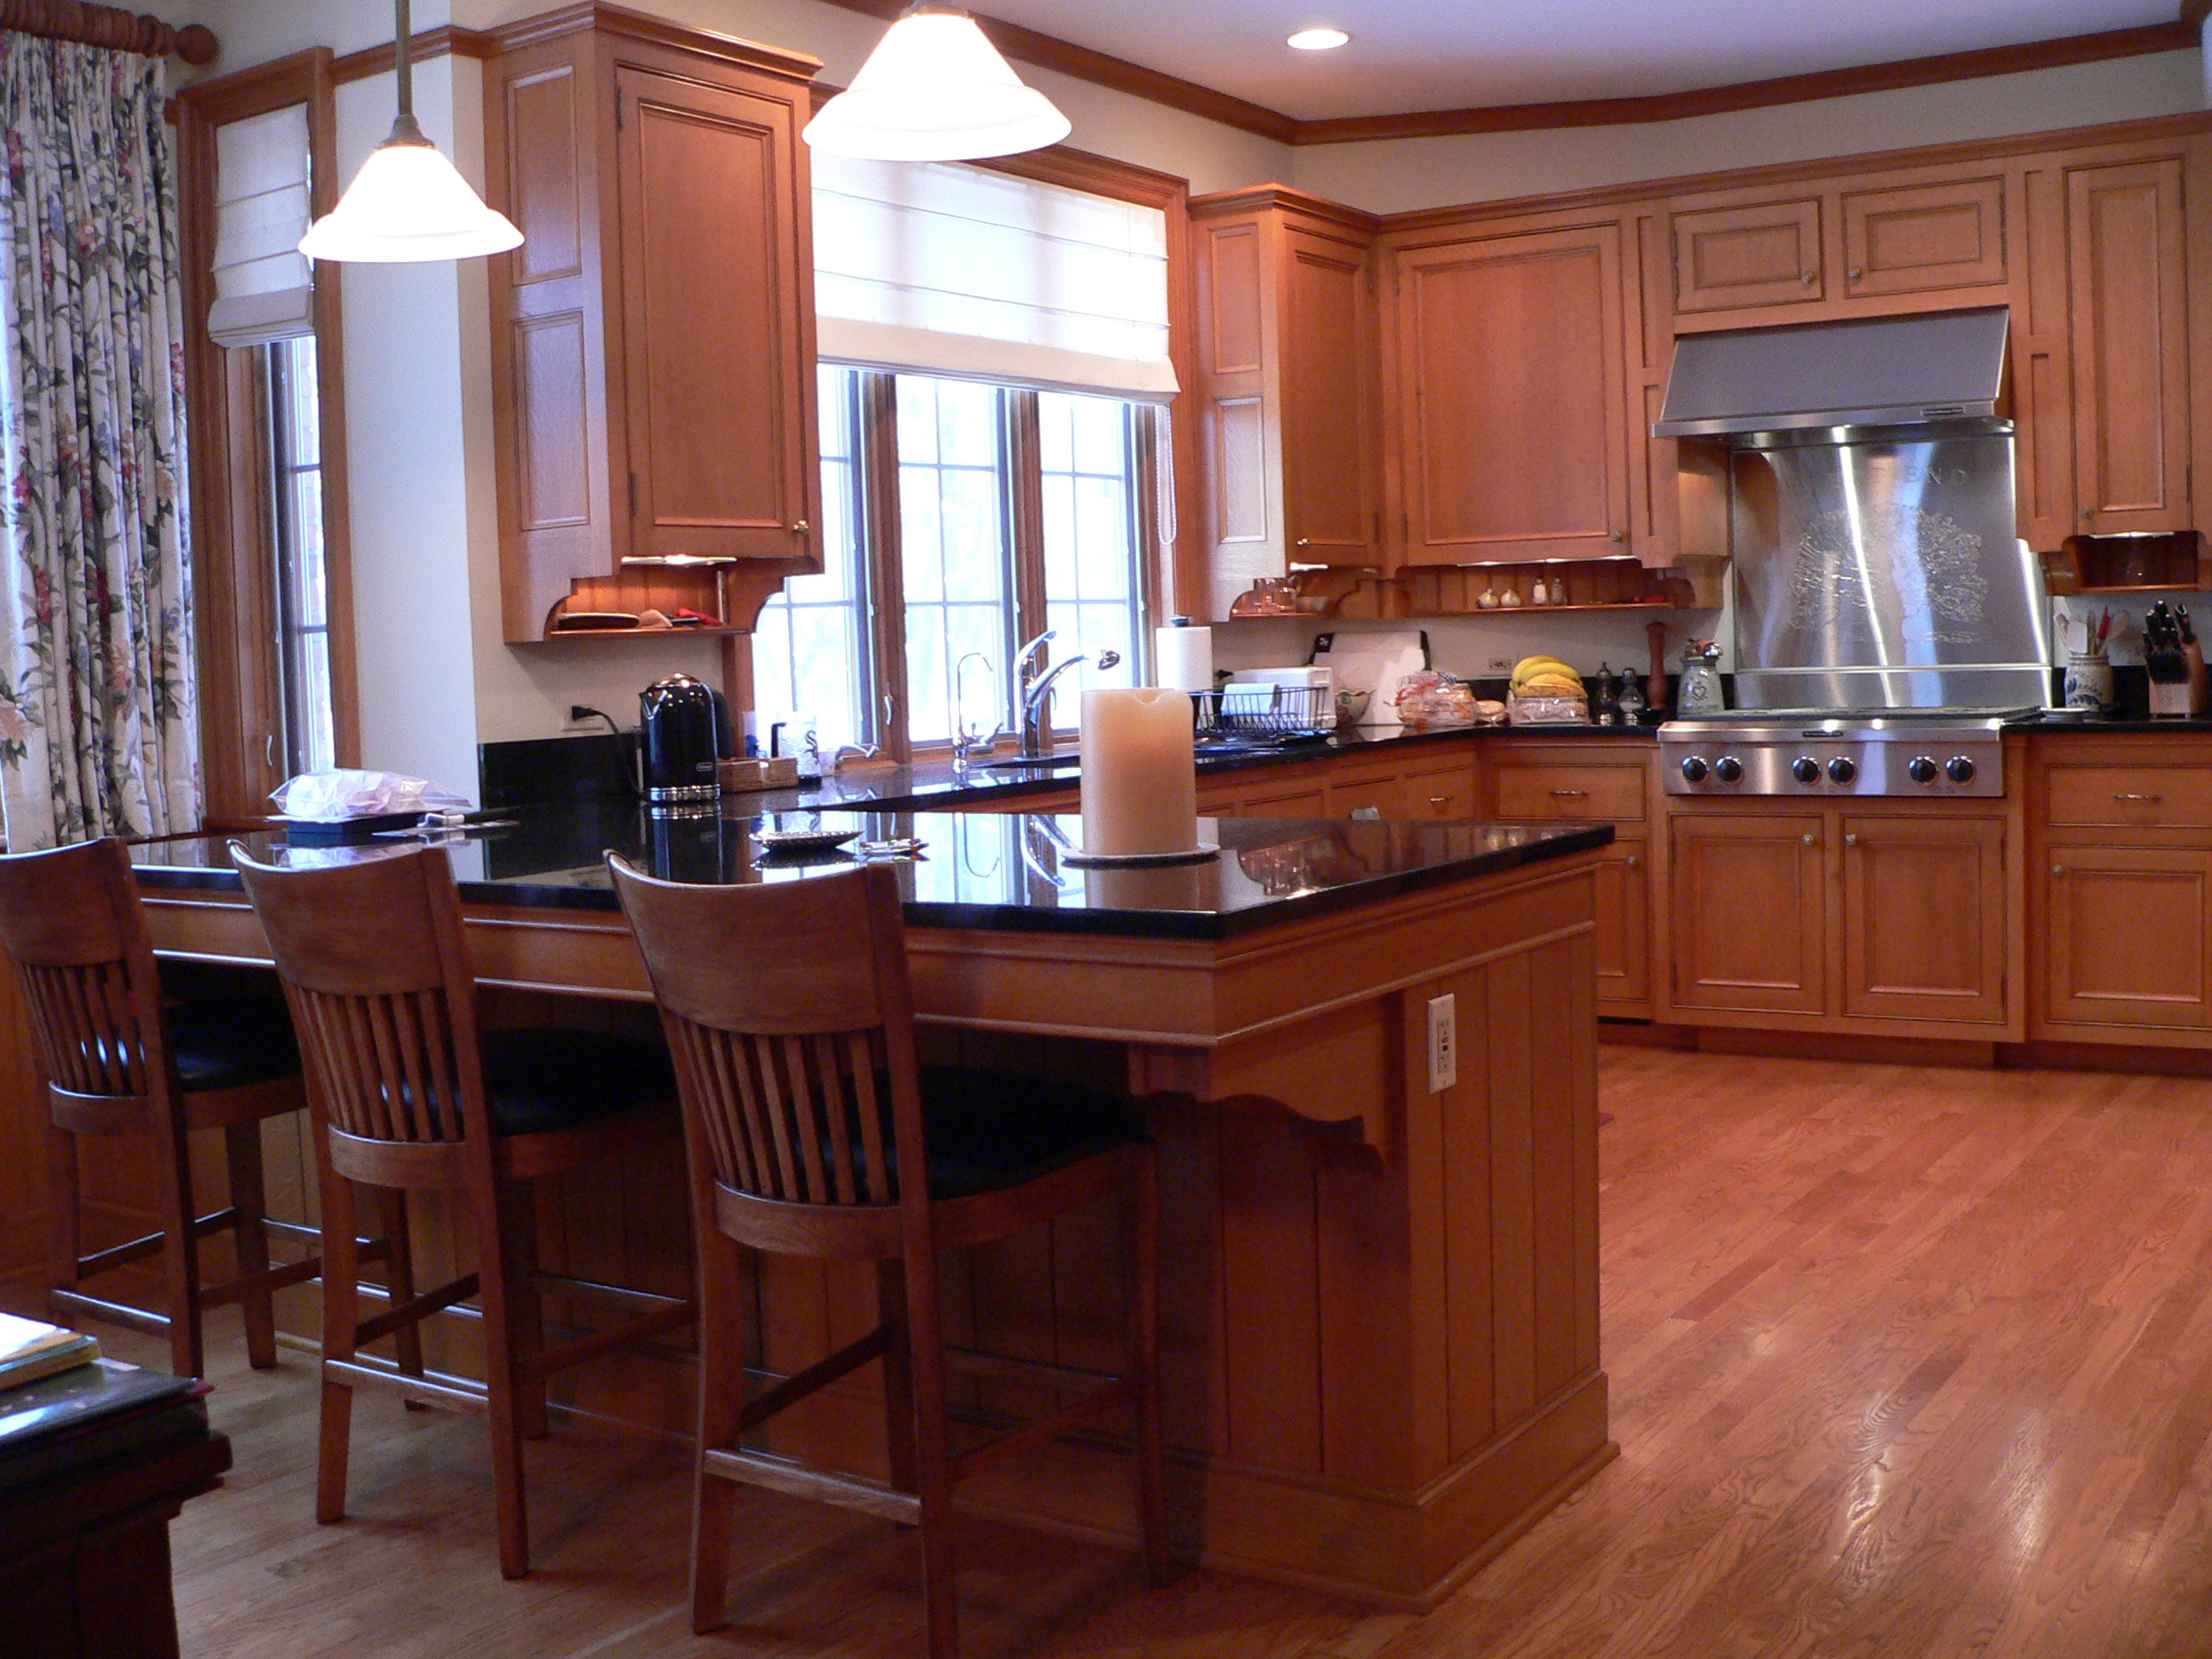 13 Stoettner Kitchen.JPG